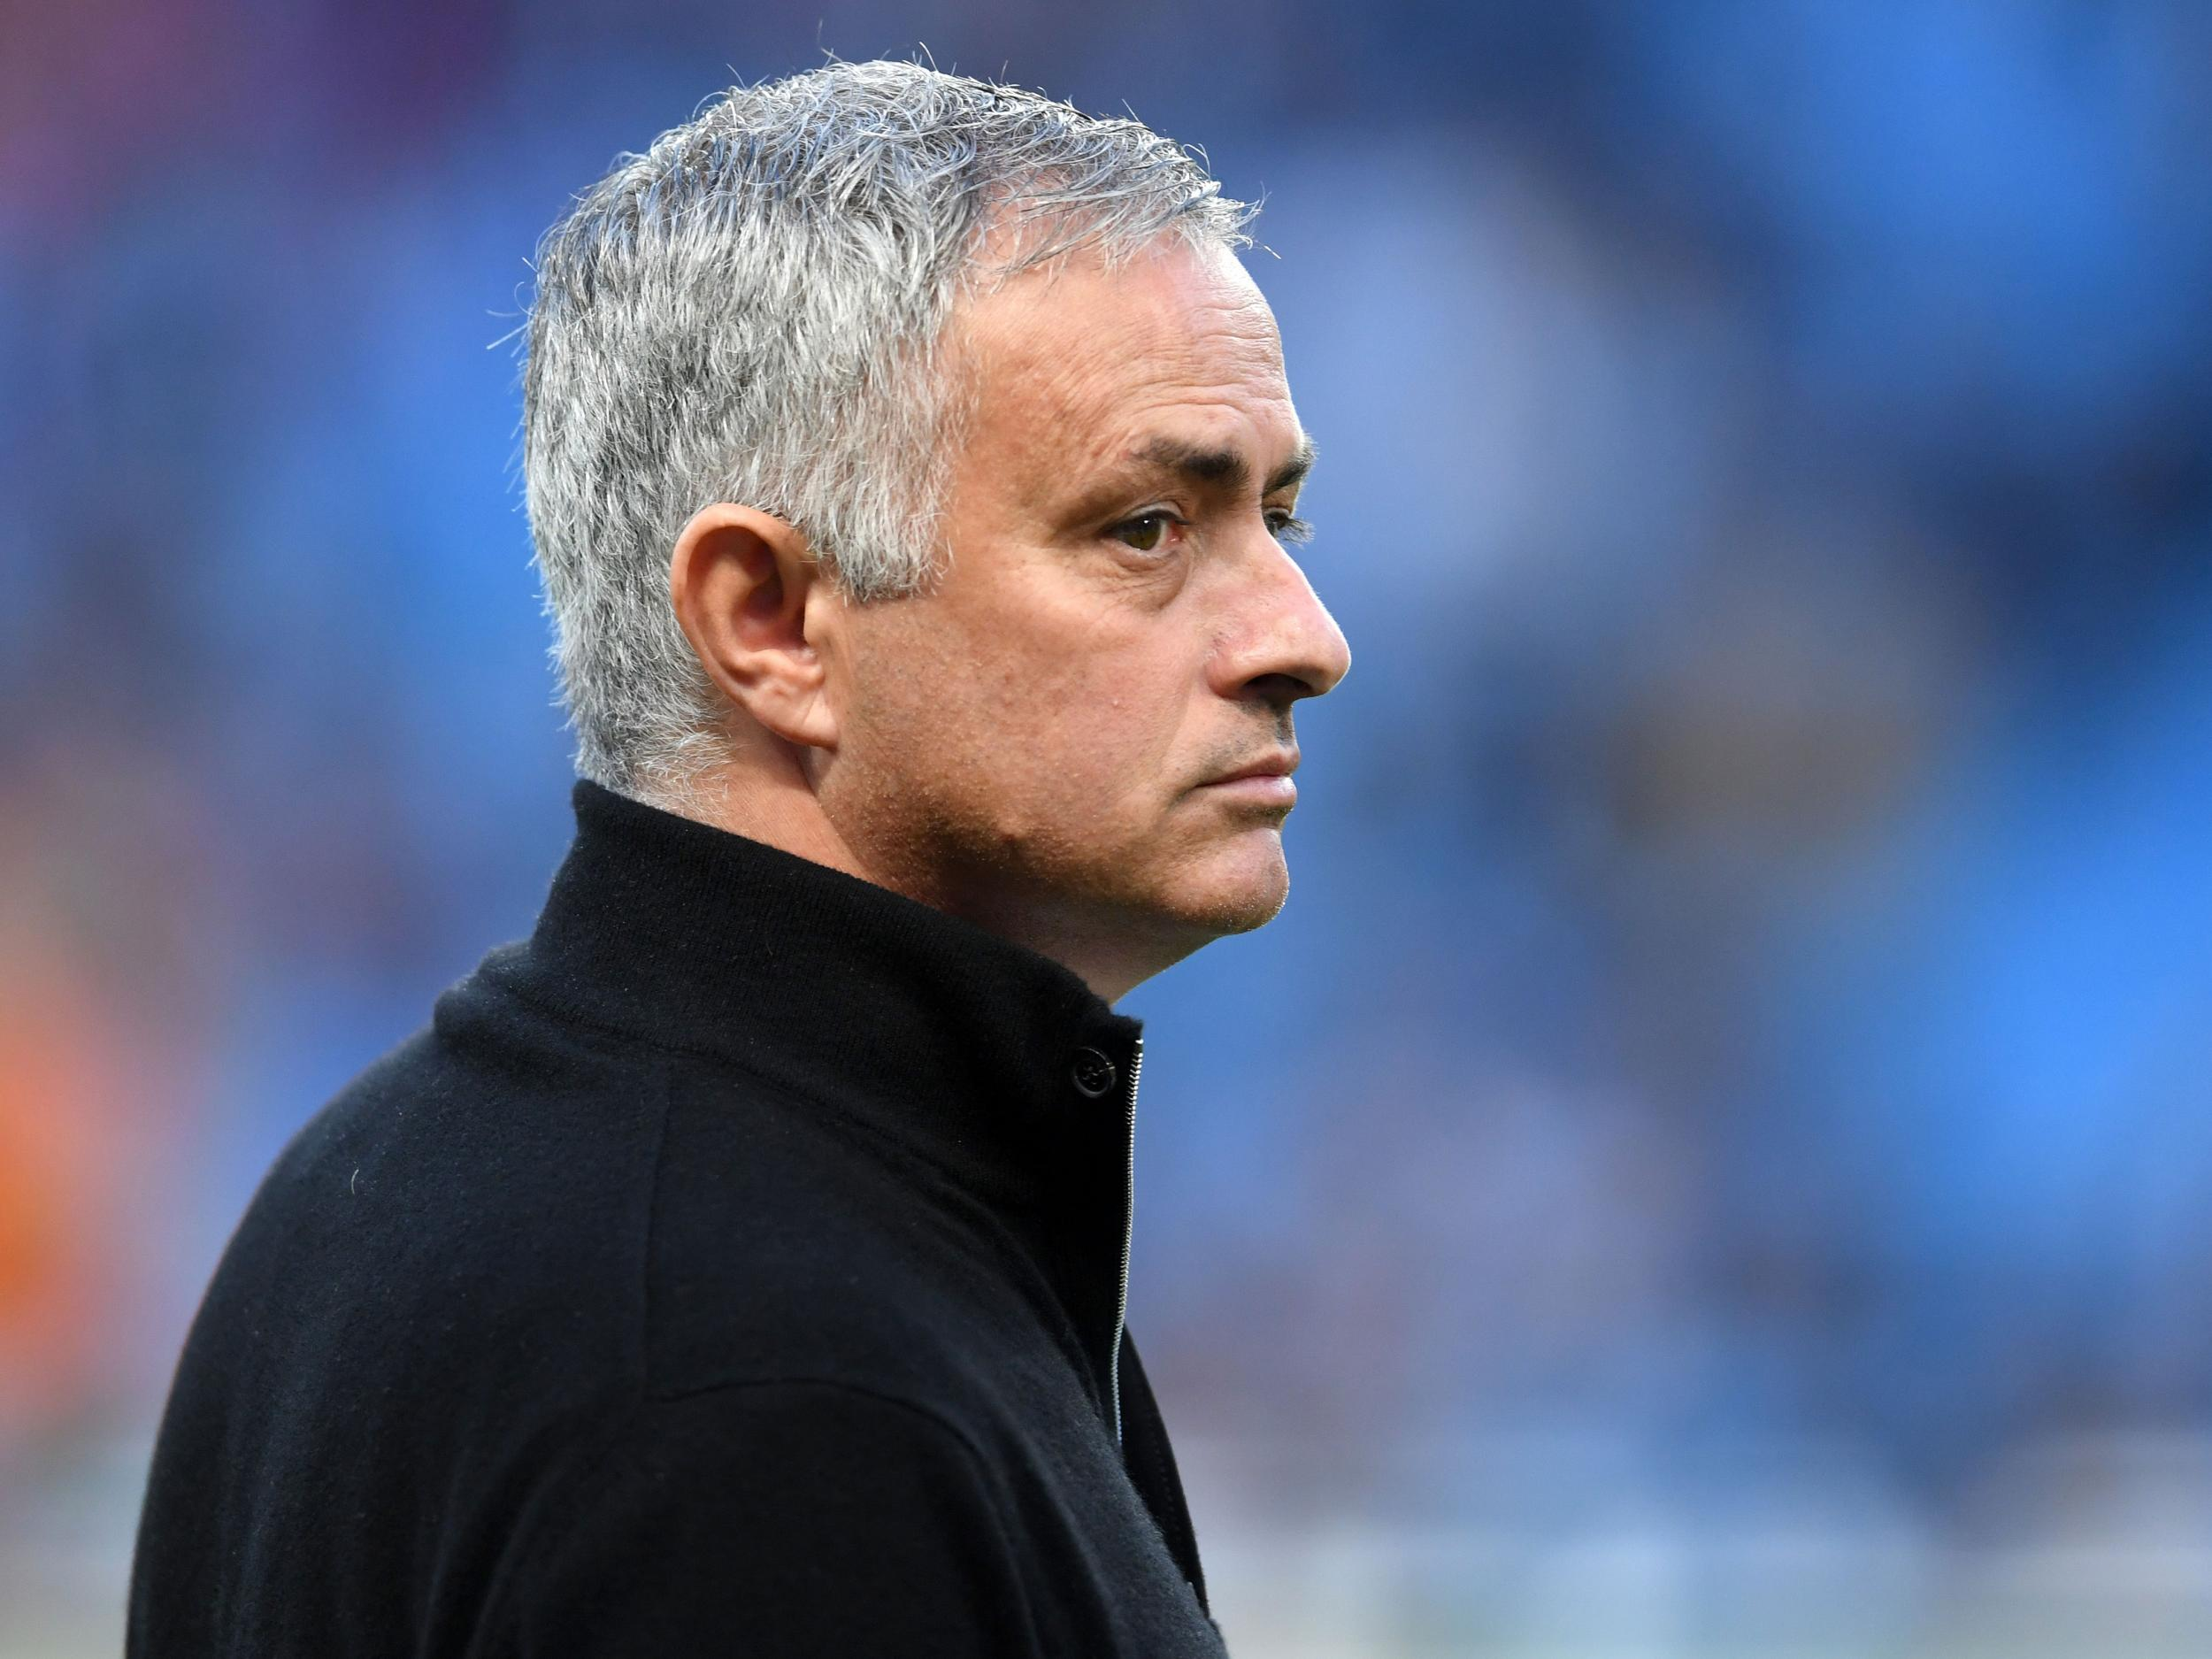 Manchester United manager Jose Mourinho refuses to 'play games' on 'out-of-context' interview quotes